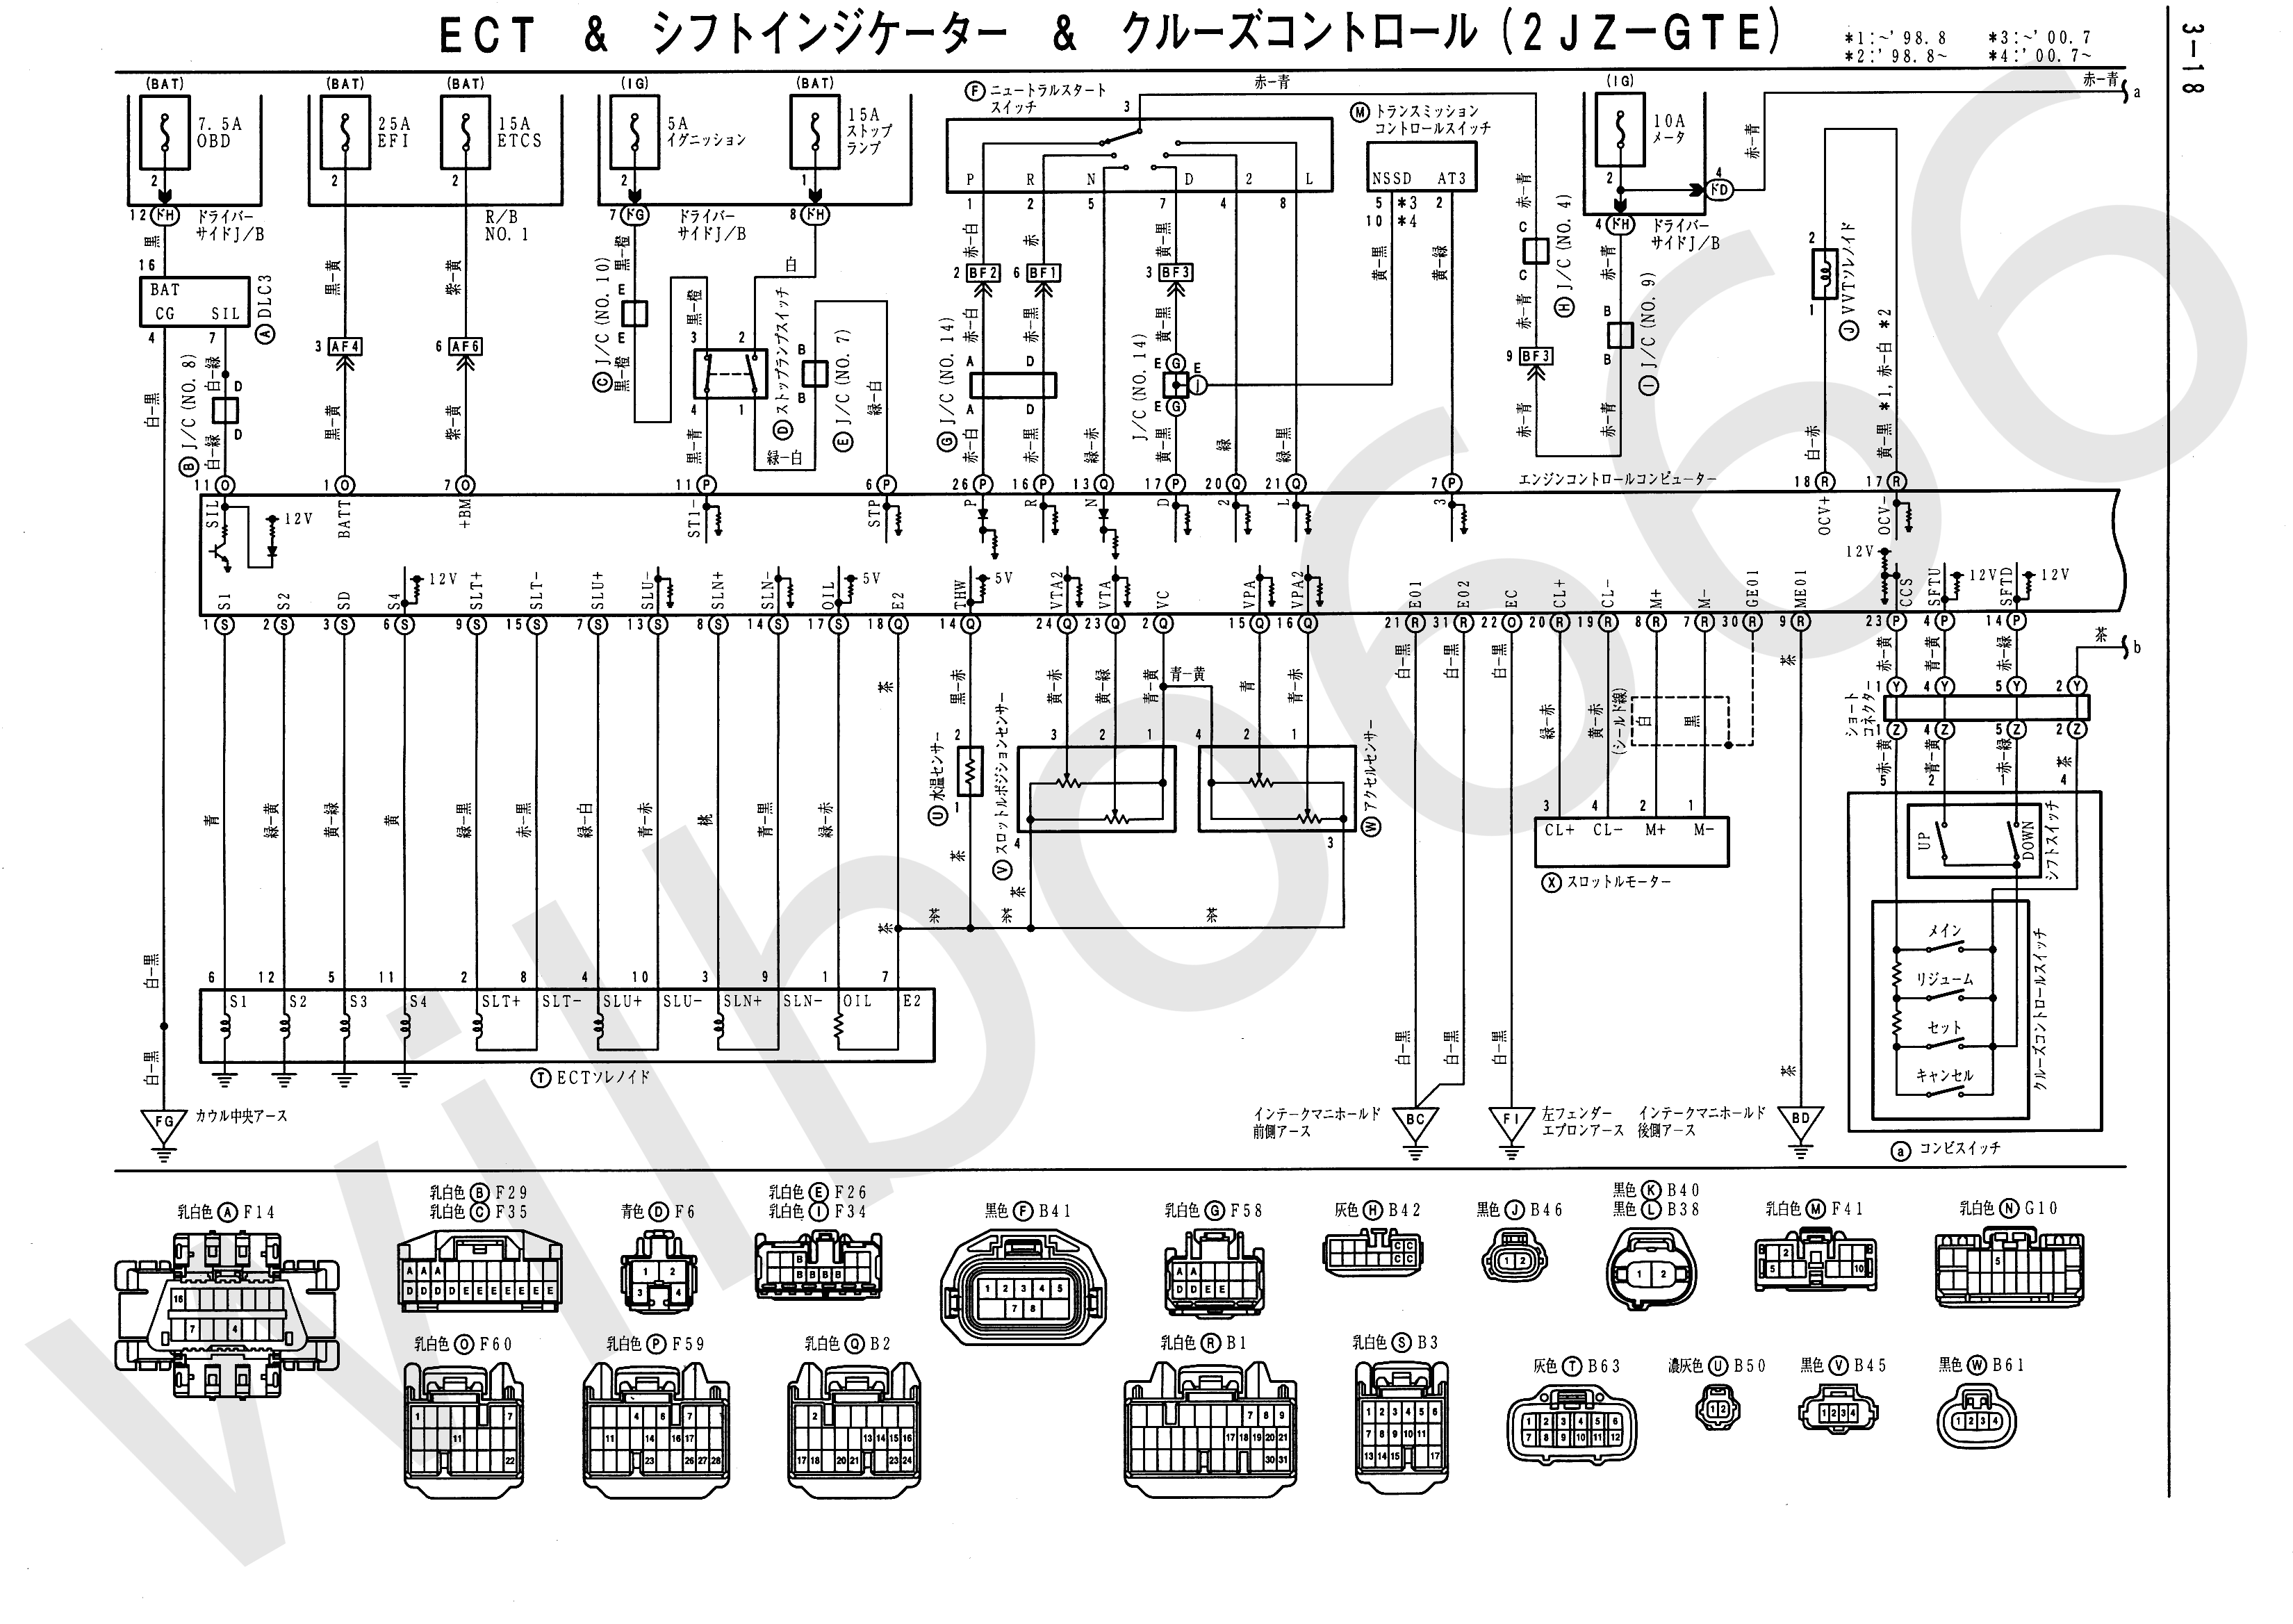 JZS161 Electrical Wiring Diagram 6748505 3 18 100 [ obd2 wiring diagram ] nissan sentra the ecu does not make h22a wiring diagram at n-0.co